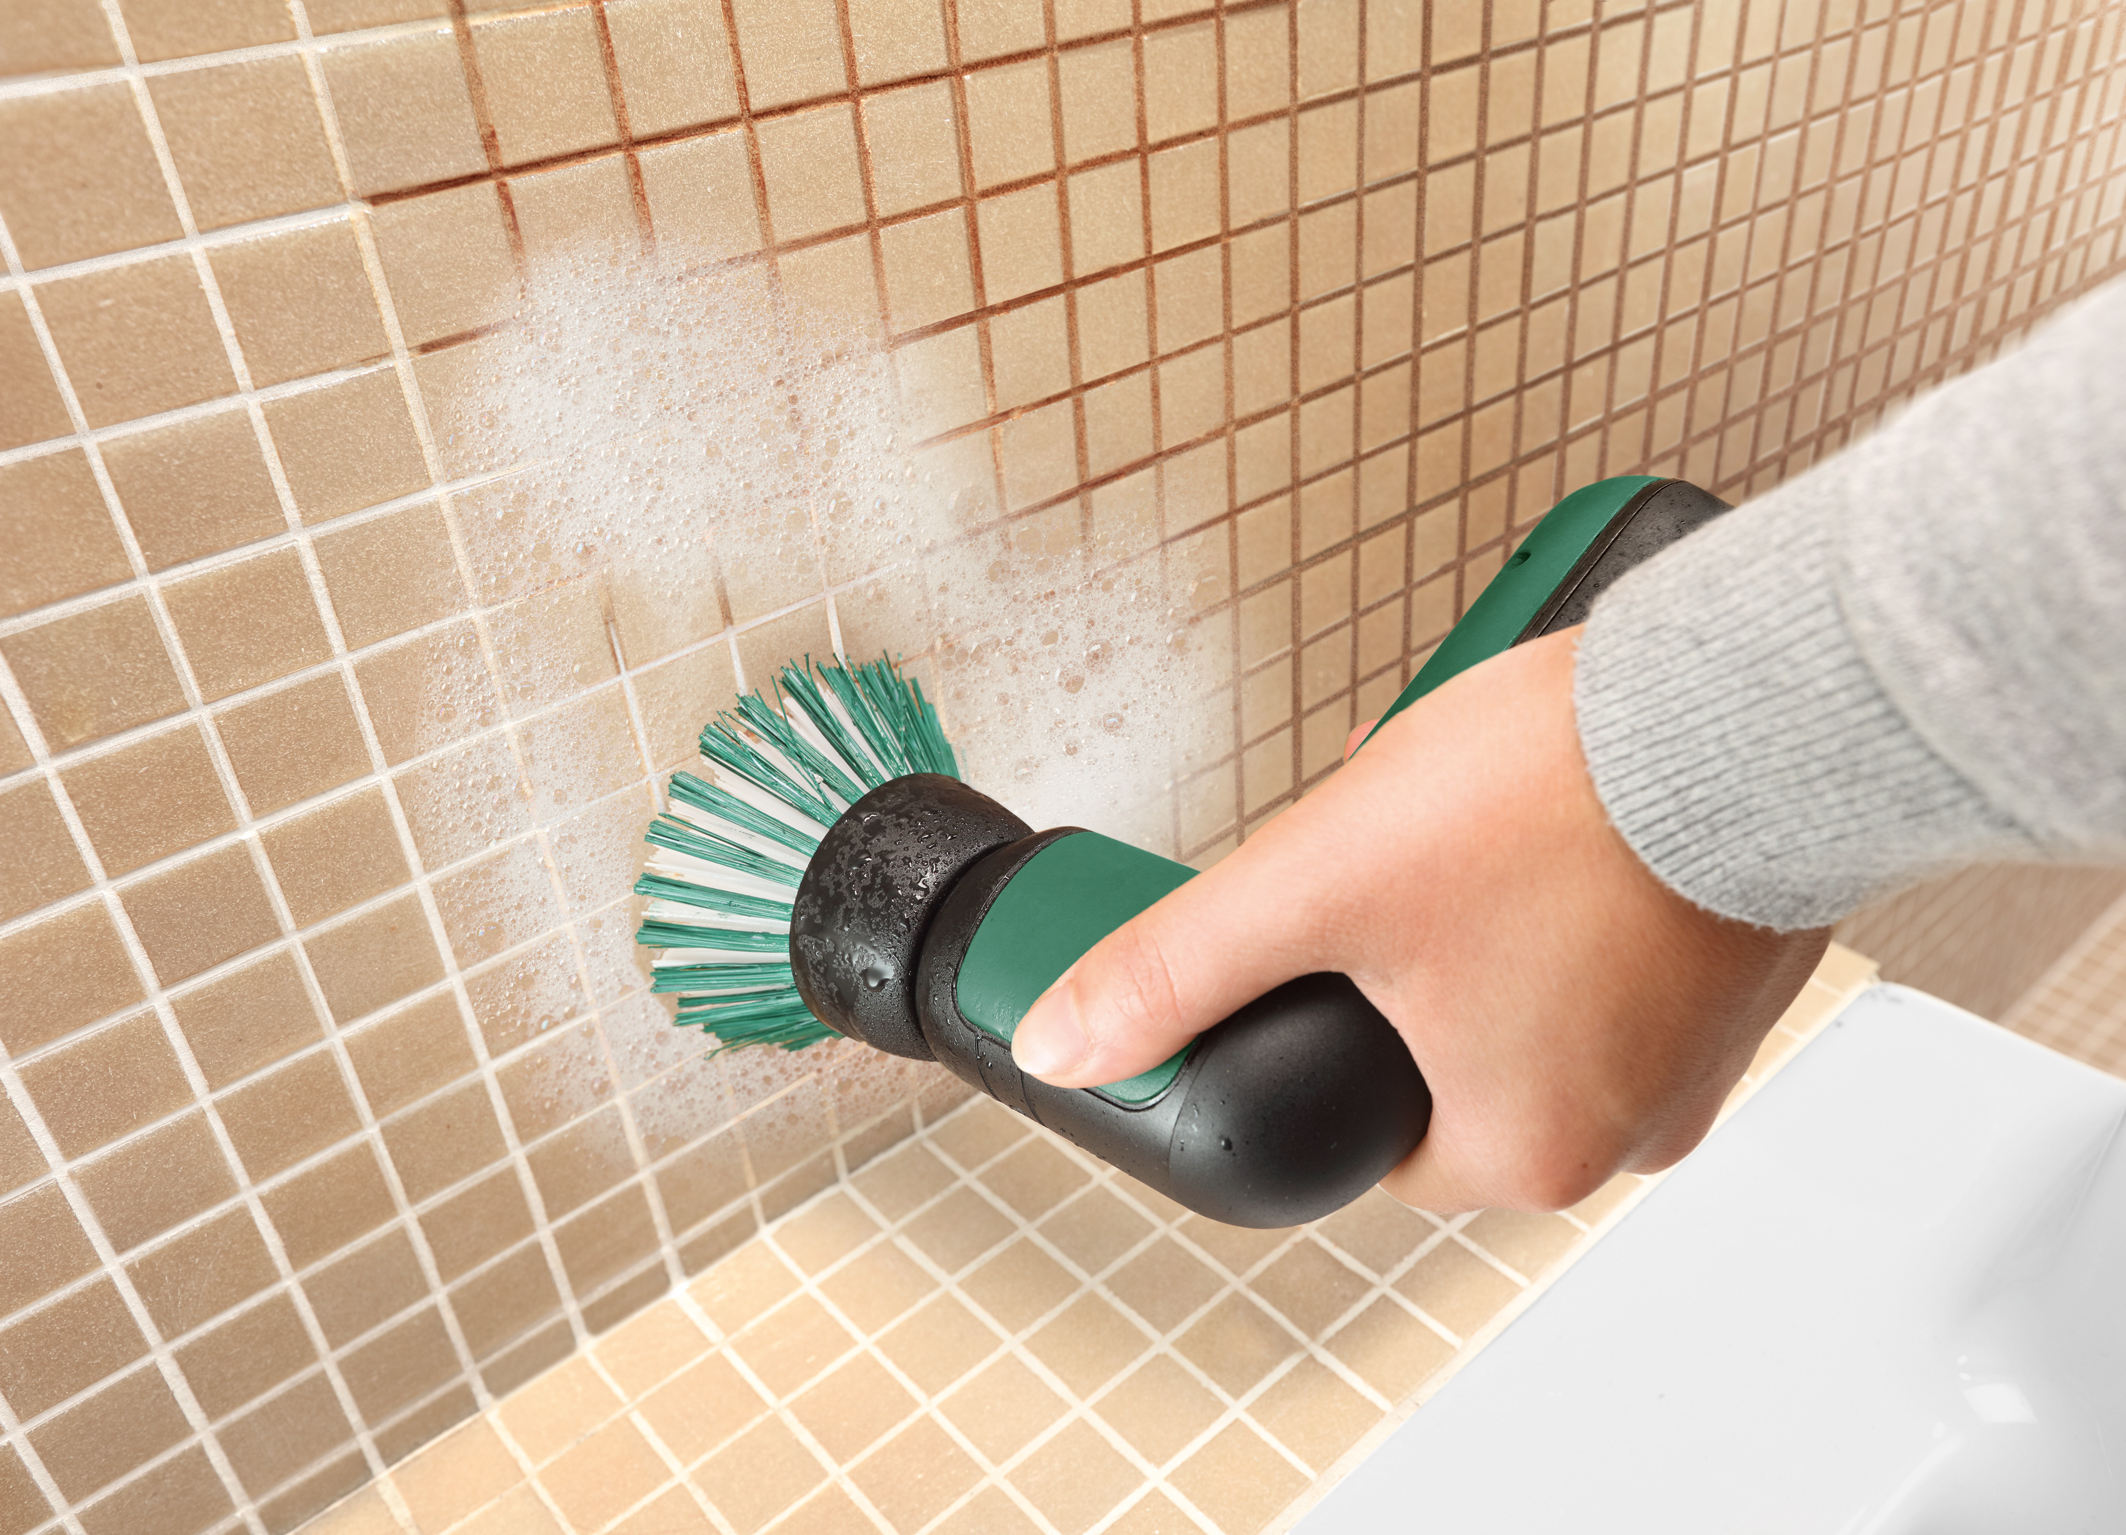 UniversalBrush – various attachments, countless cleaning possibilities: Brush for cleaning of extremely dirty surfaces